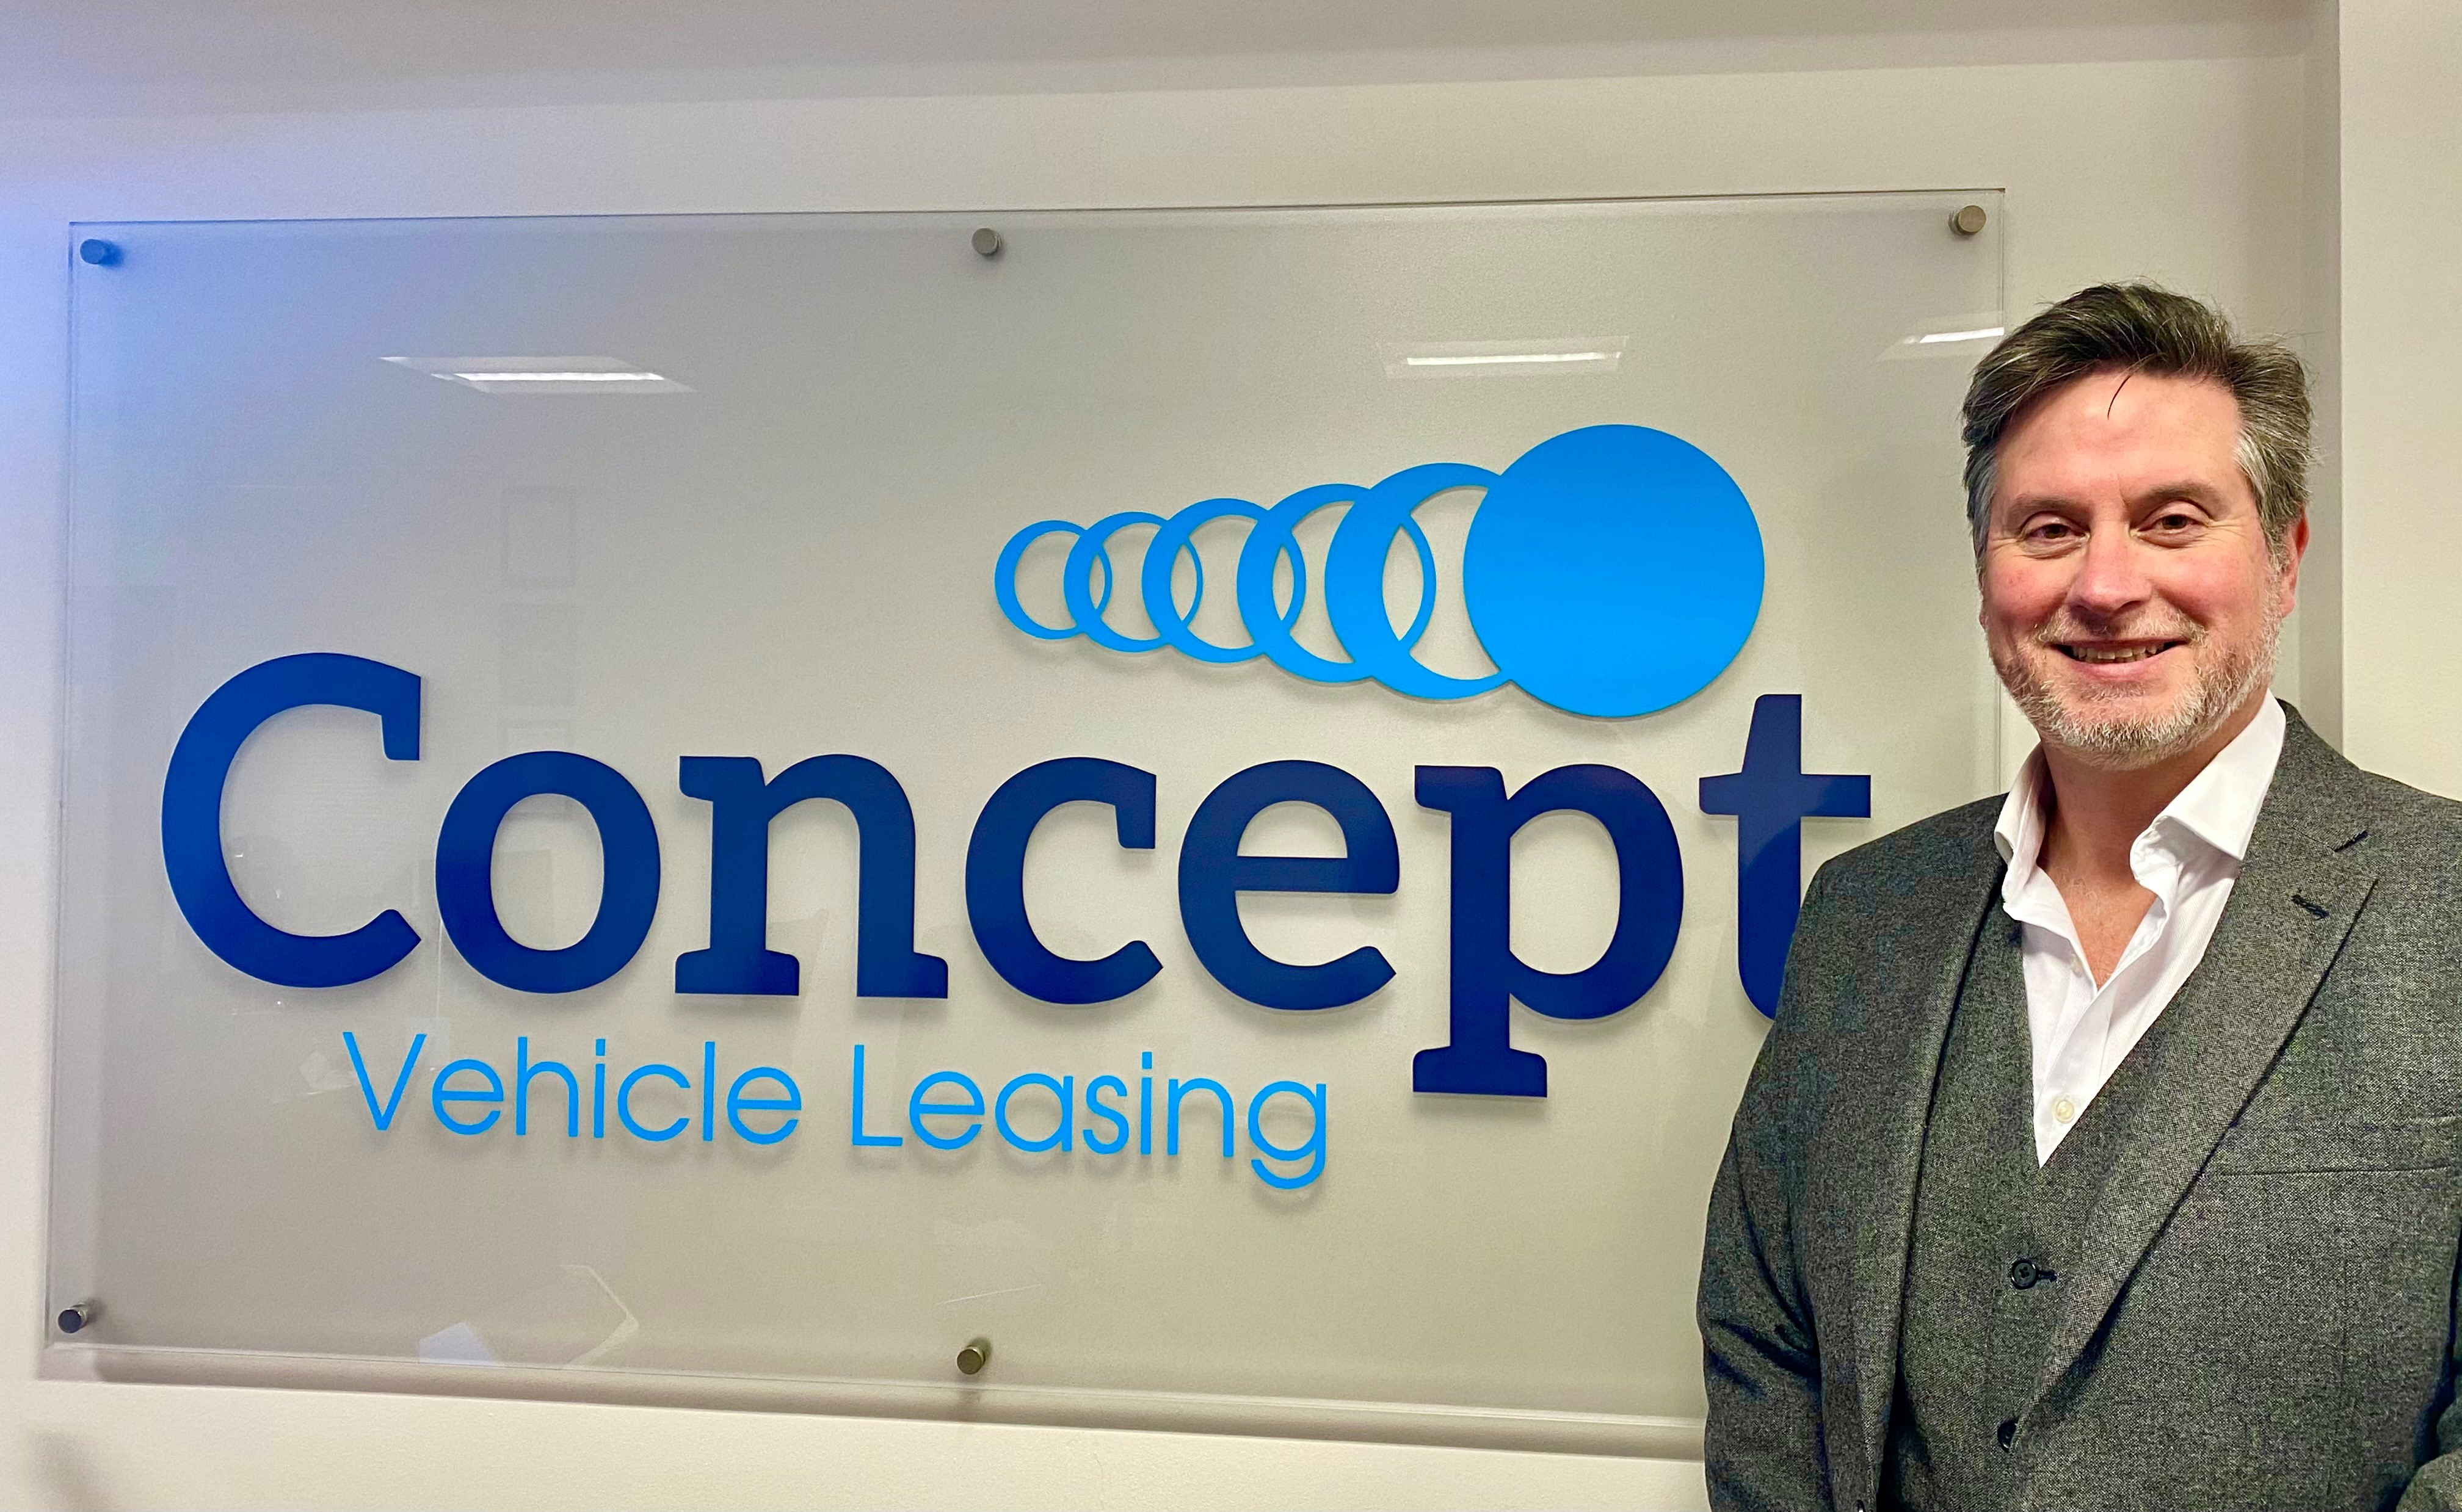 Gary Dawes is Head of Strategic Partnerships at Concept